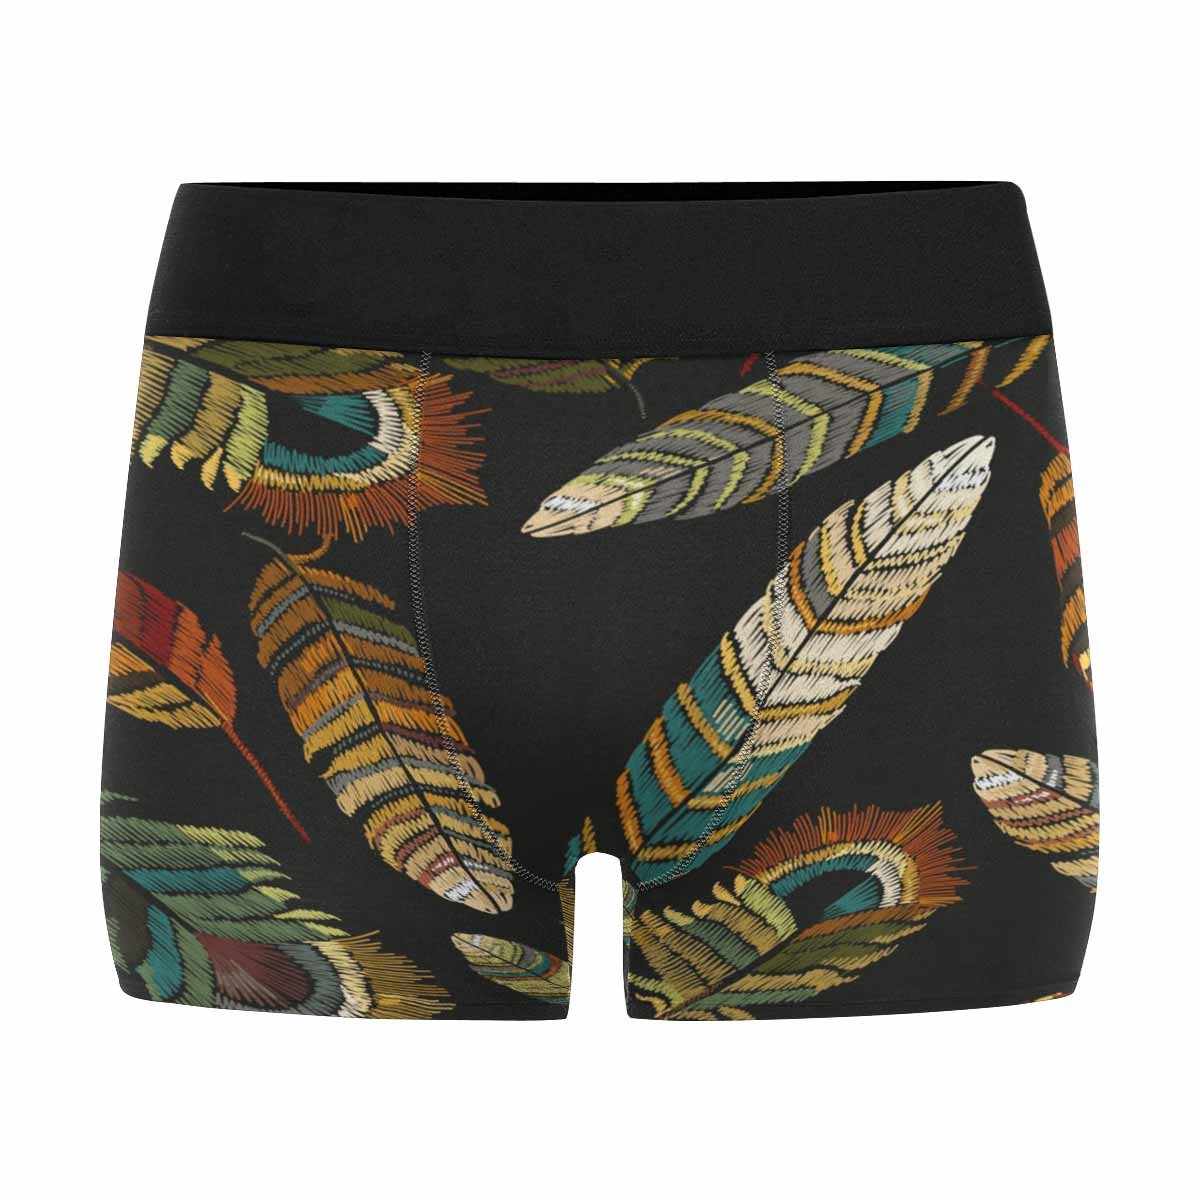 INTERESTPRINT Custom Mens All-Over Print Boxer Briefs Beautiful Bright Tropical Peacock Feathers XS-3XL